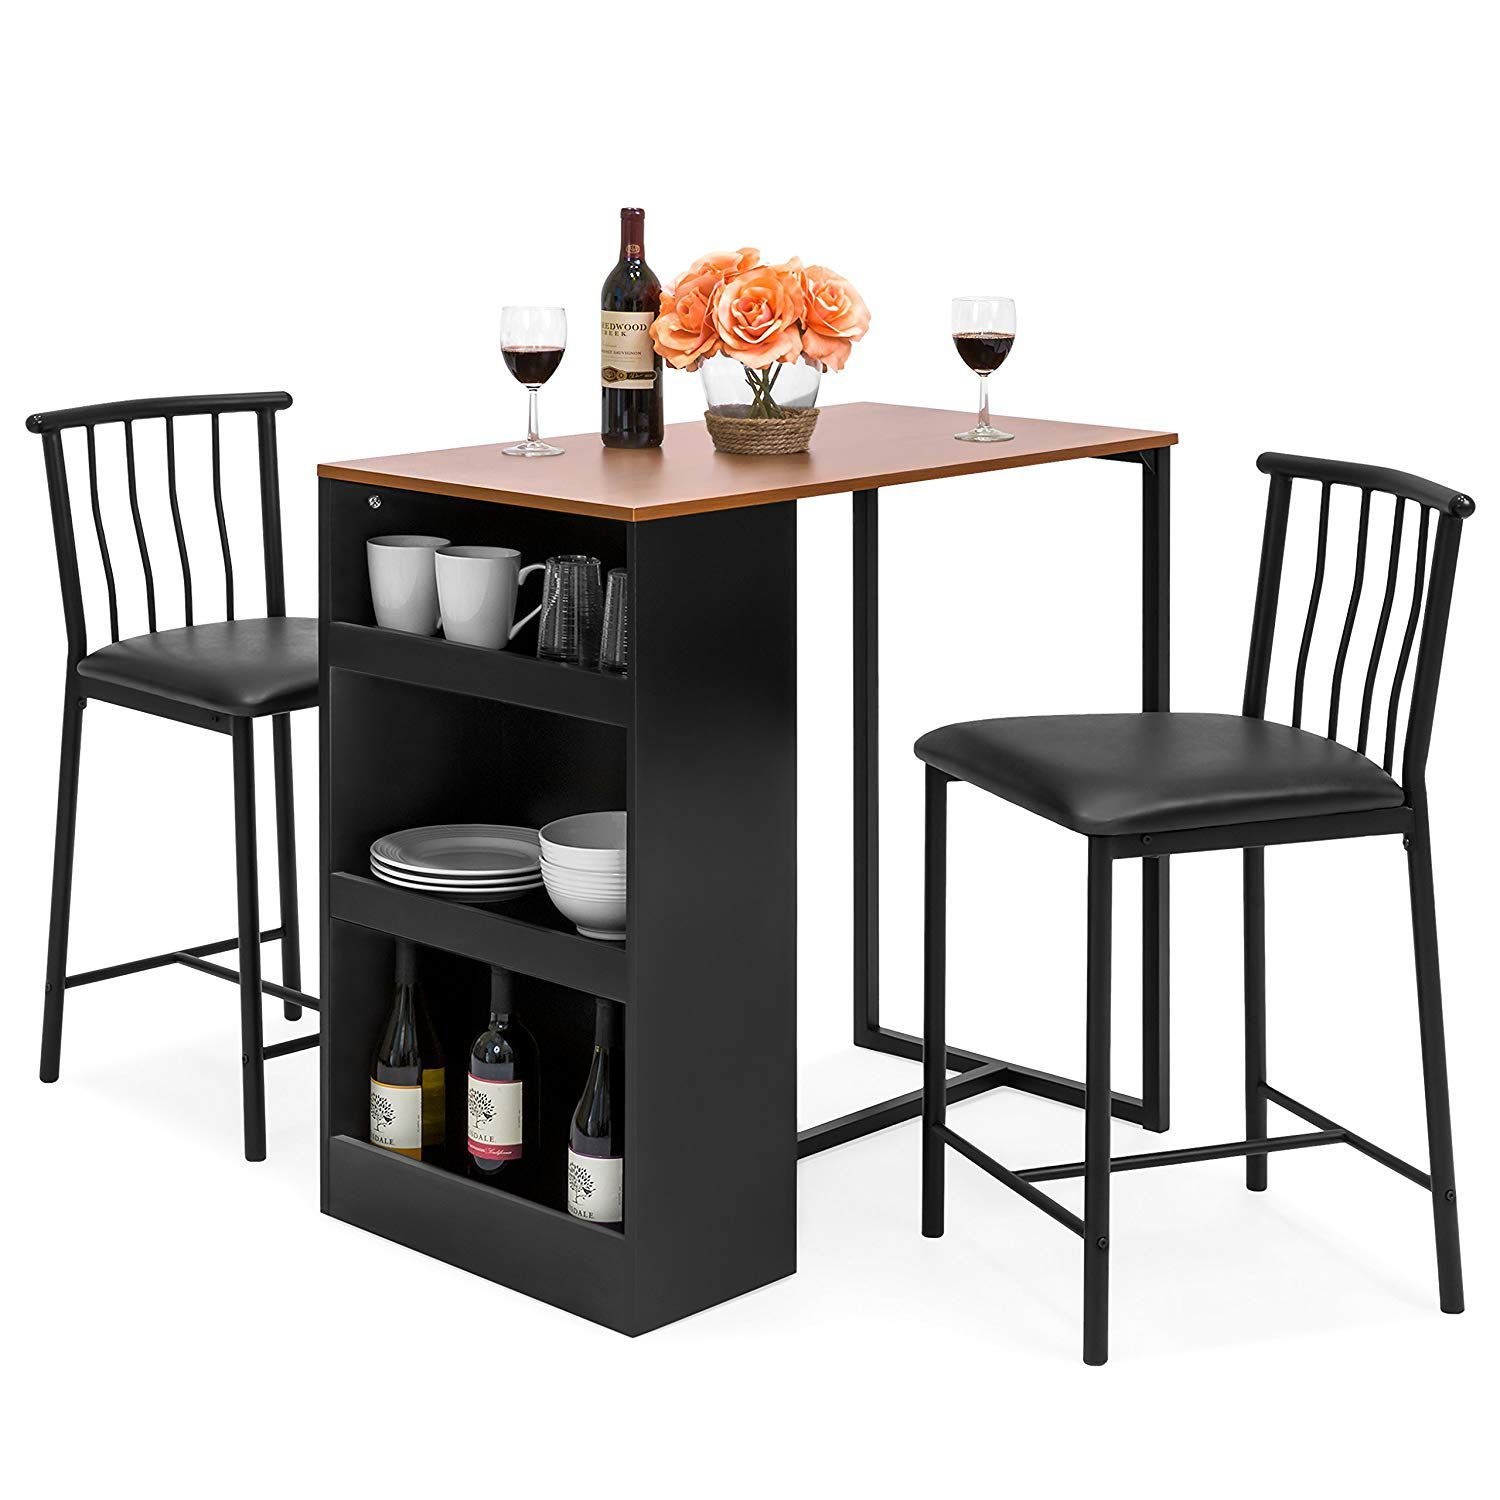 Counter Height Dining Table Set with Storage